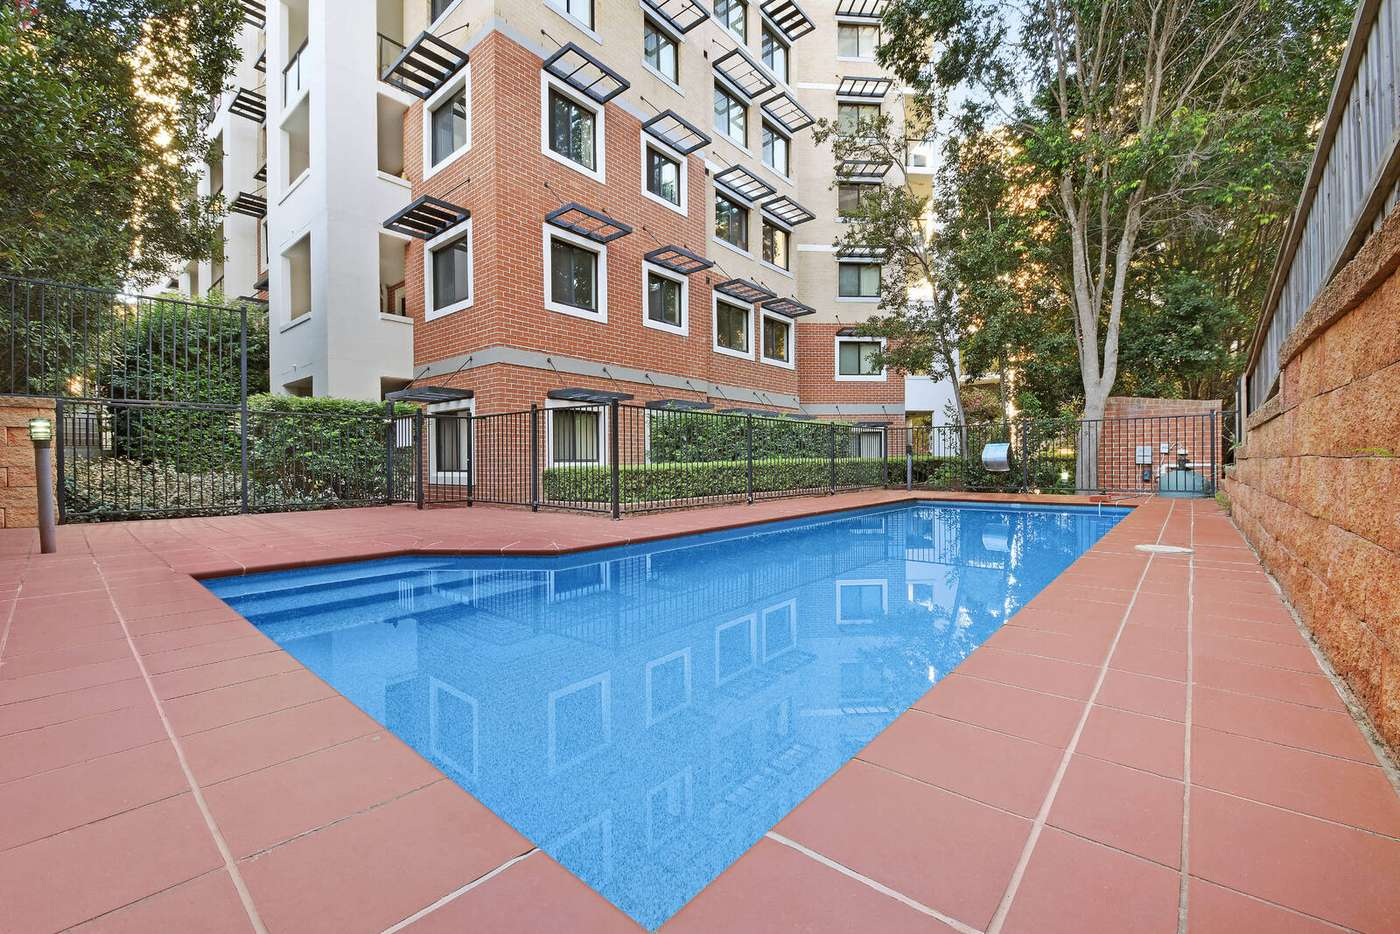 Sixth view of Homely apartment listing, 20/6-8 College Crescent, Hornsby NSW 2077